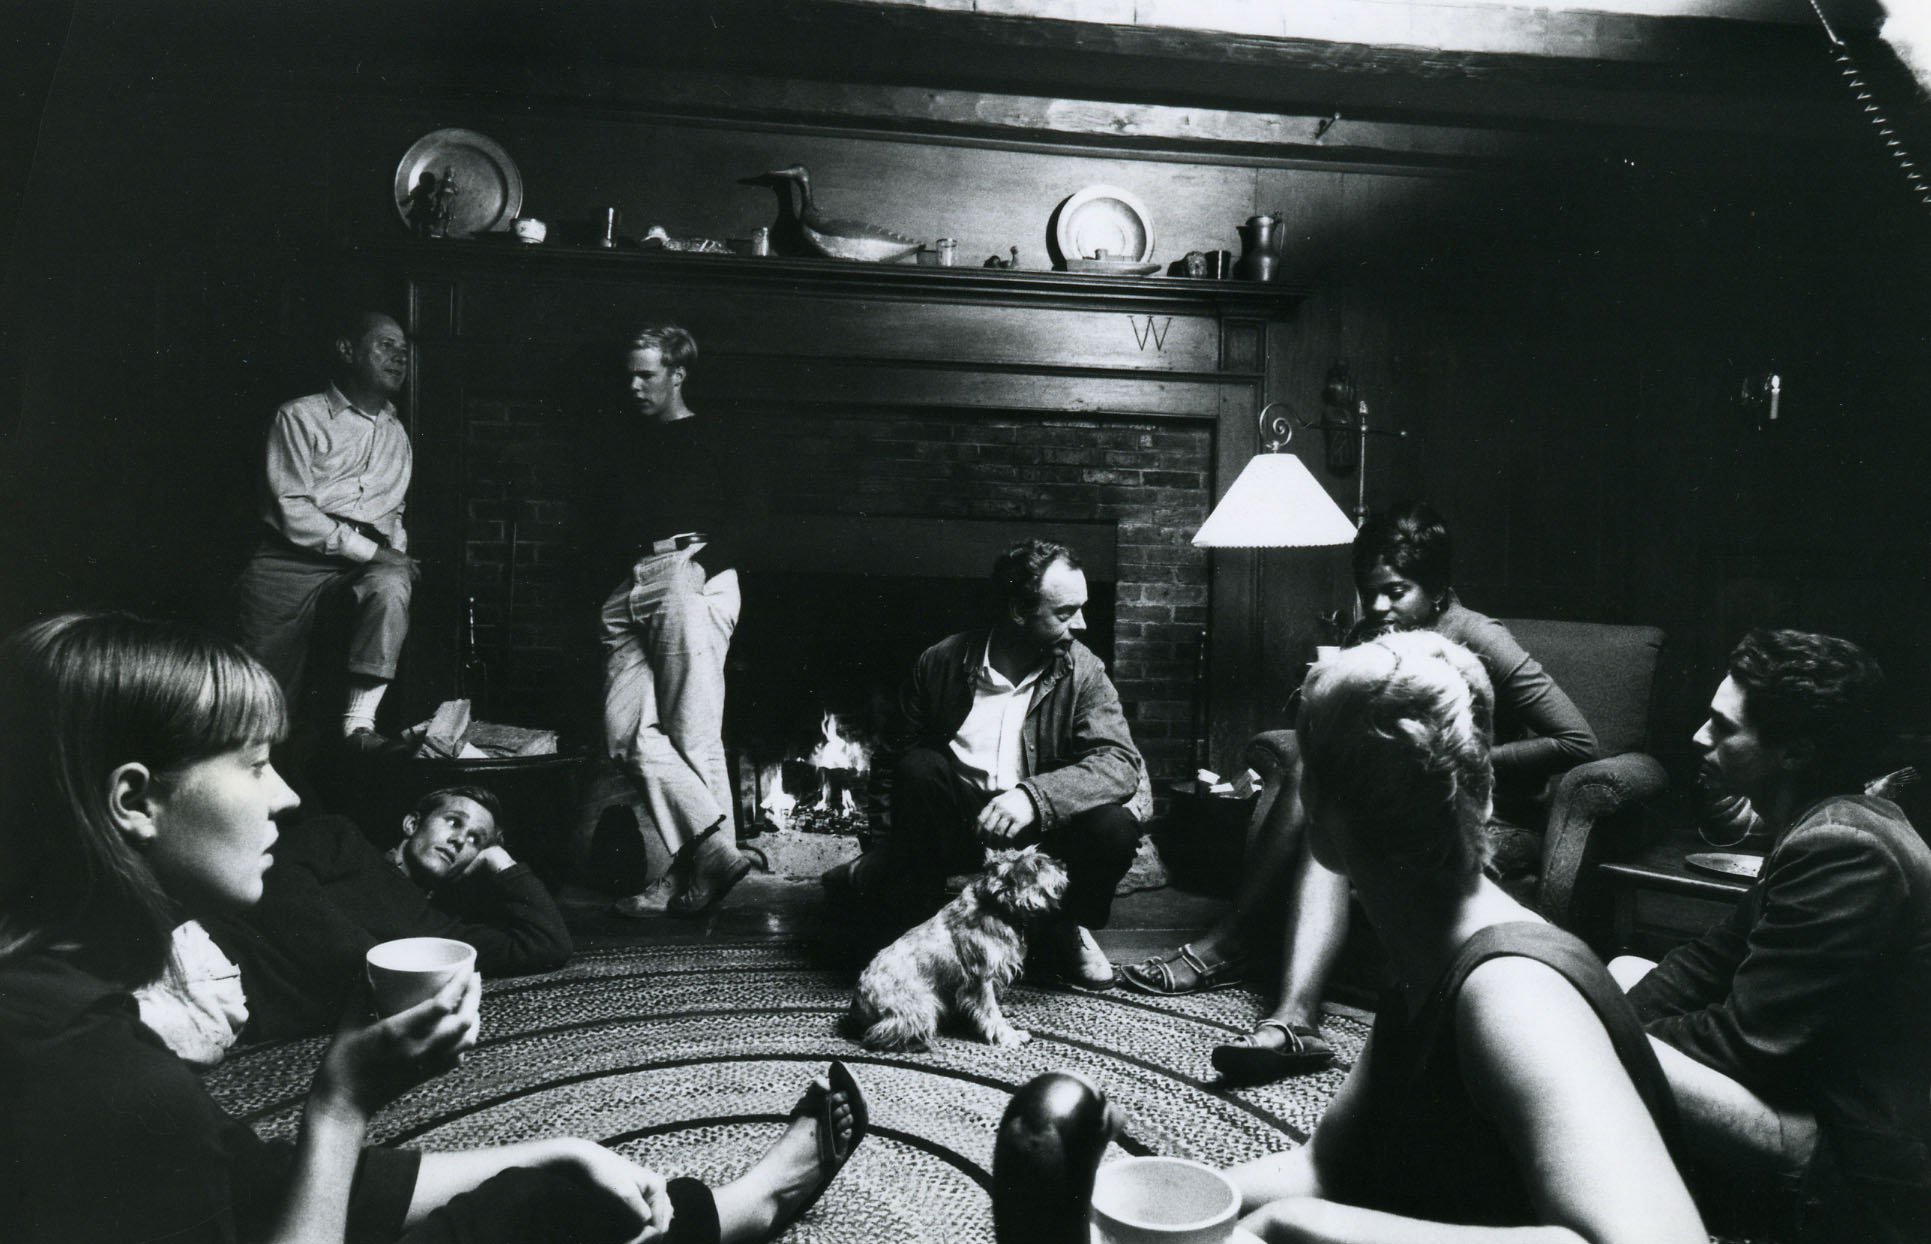 Co-founder Willard Cummings hosting participants in The Red Farm, circa 1965.